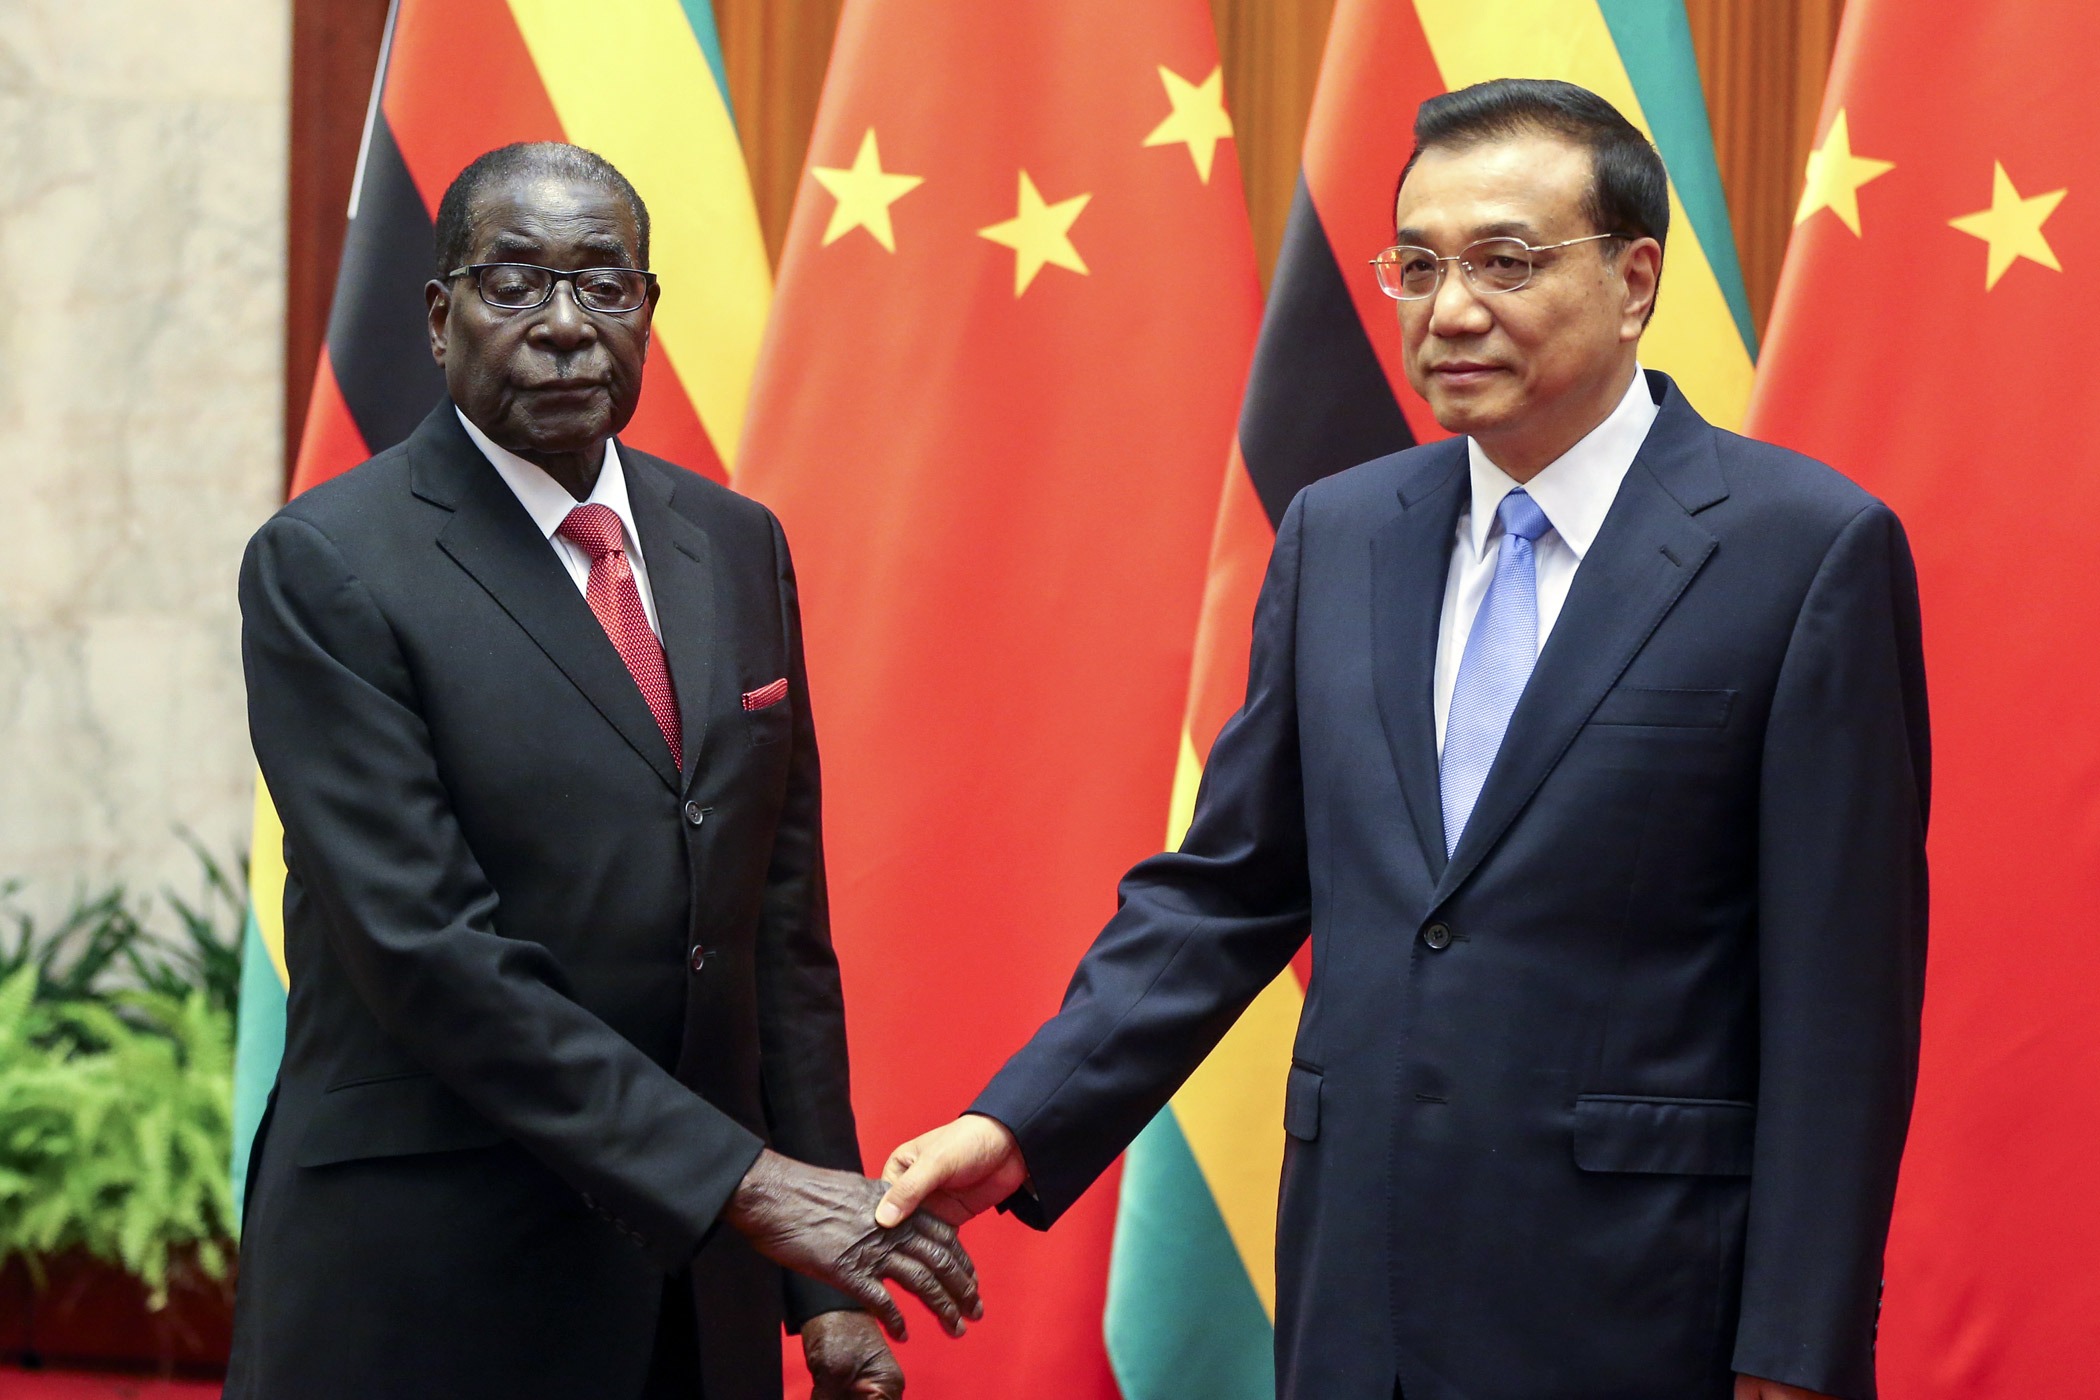 Zimbabwean President Robert Mugabe, left, meets Chinese Premier Li Keqiang at the Great Hall of the People on Aug. 26, 2014 in Beijing.